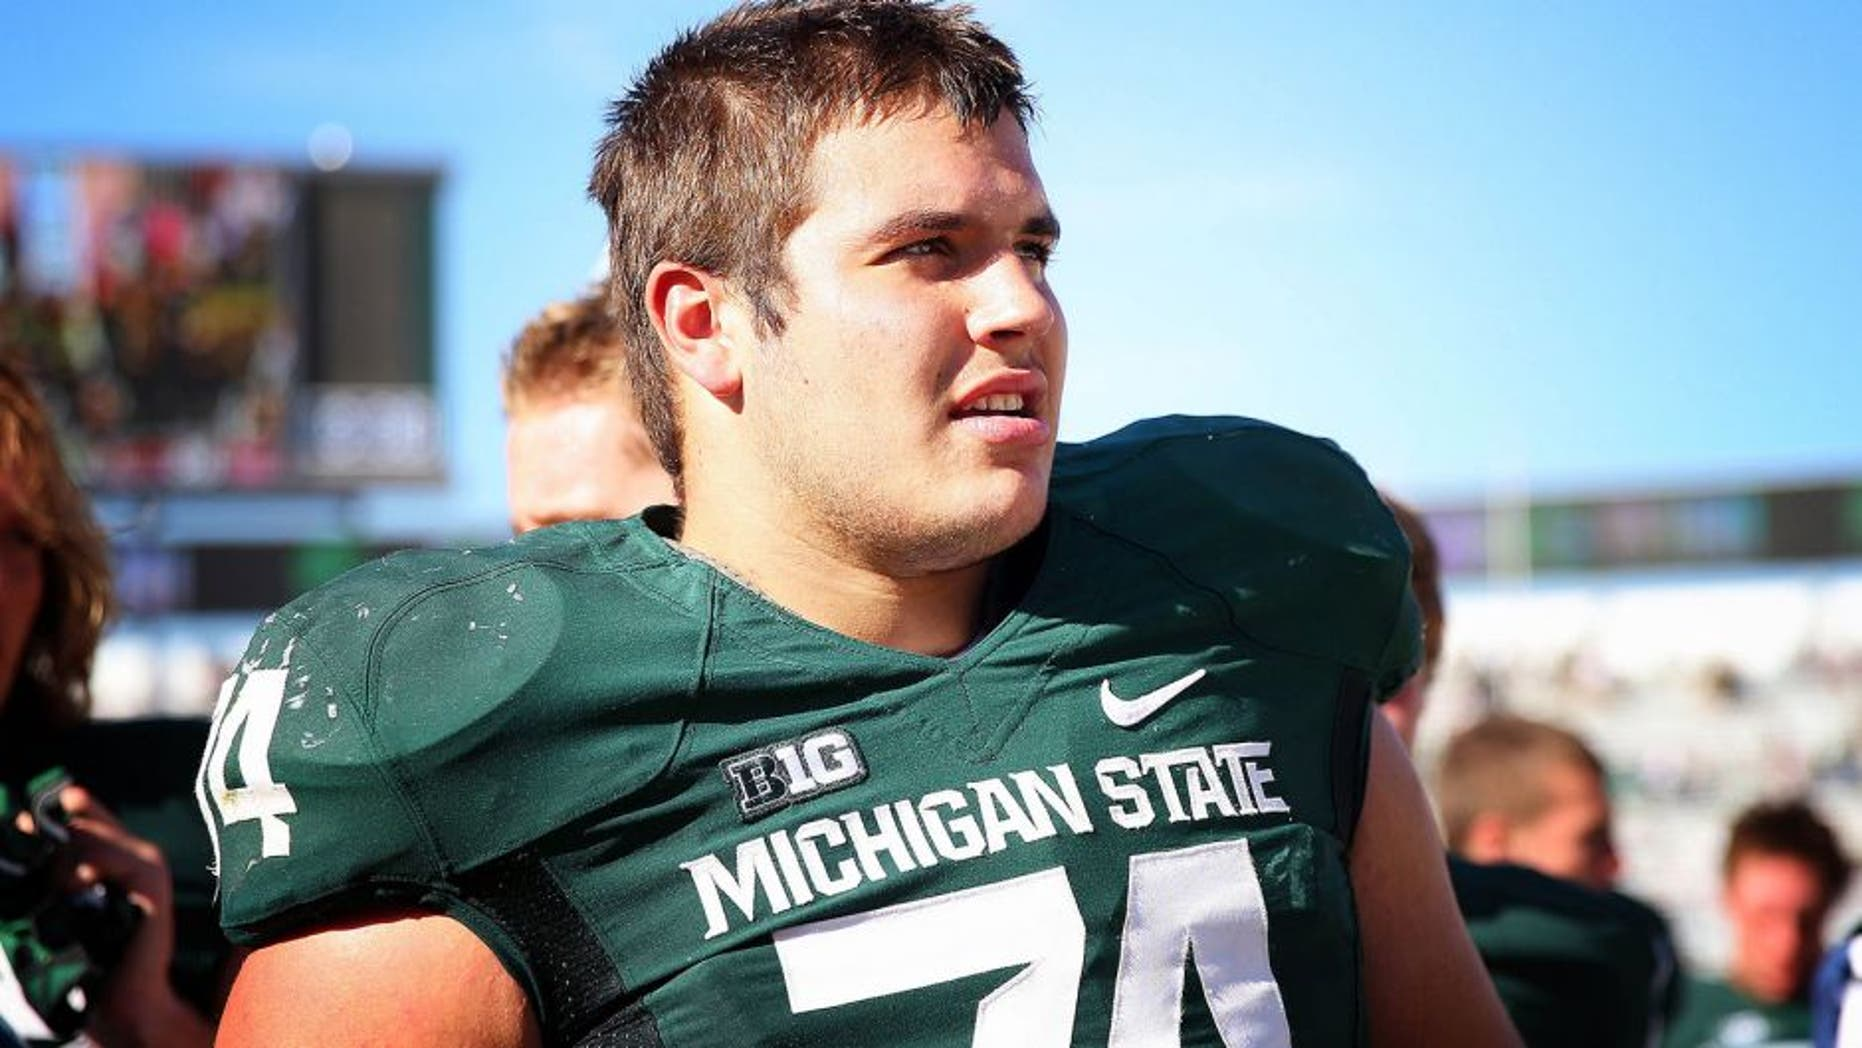 Oct 12, 2013; East Lansing, MI, USA; Michigan State Spartans offensive tackle Jack Conklin (74) celebrates the win after a game at Spartan Stadium. Mandatory Credit: Mike Carter-USA TODAY Sports